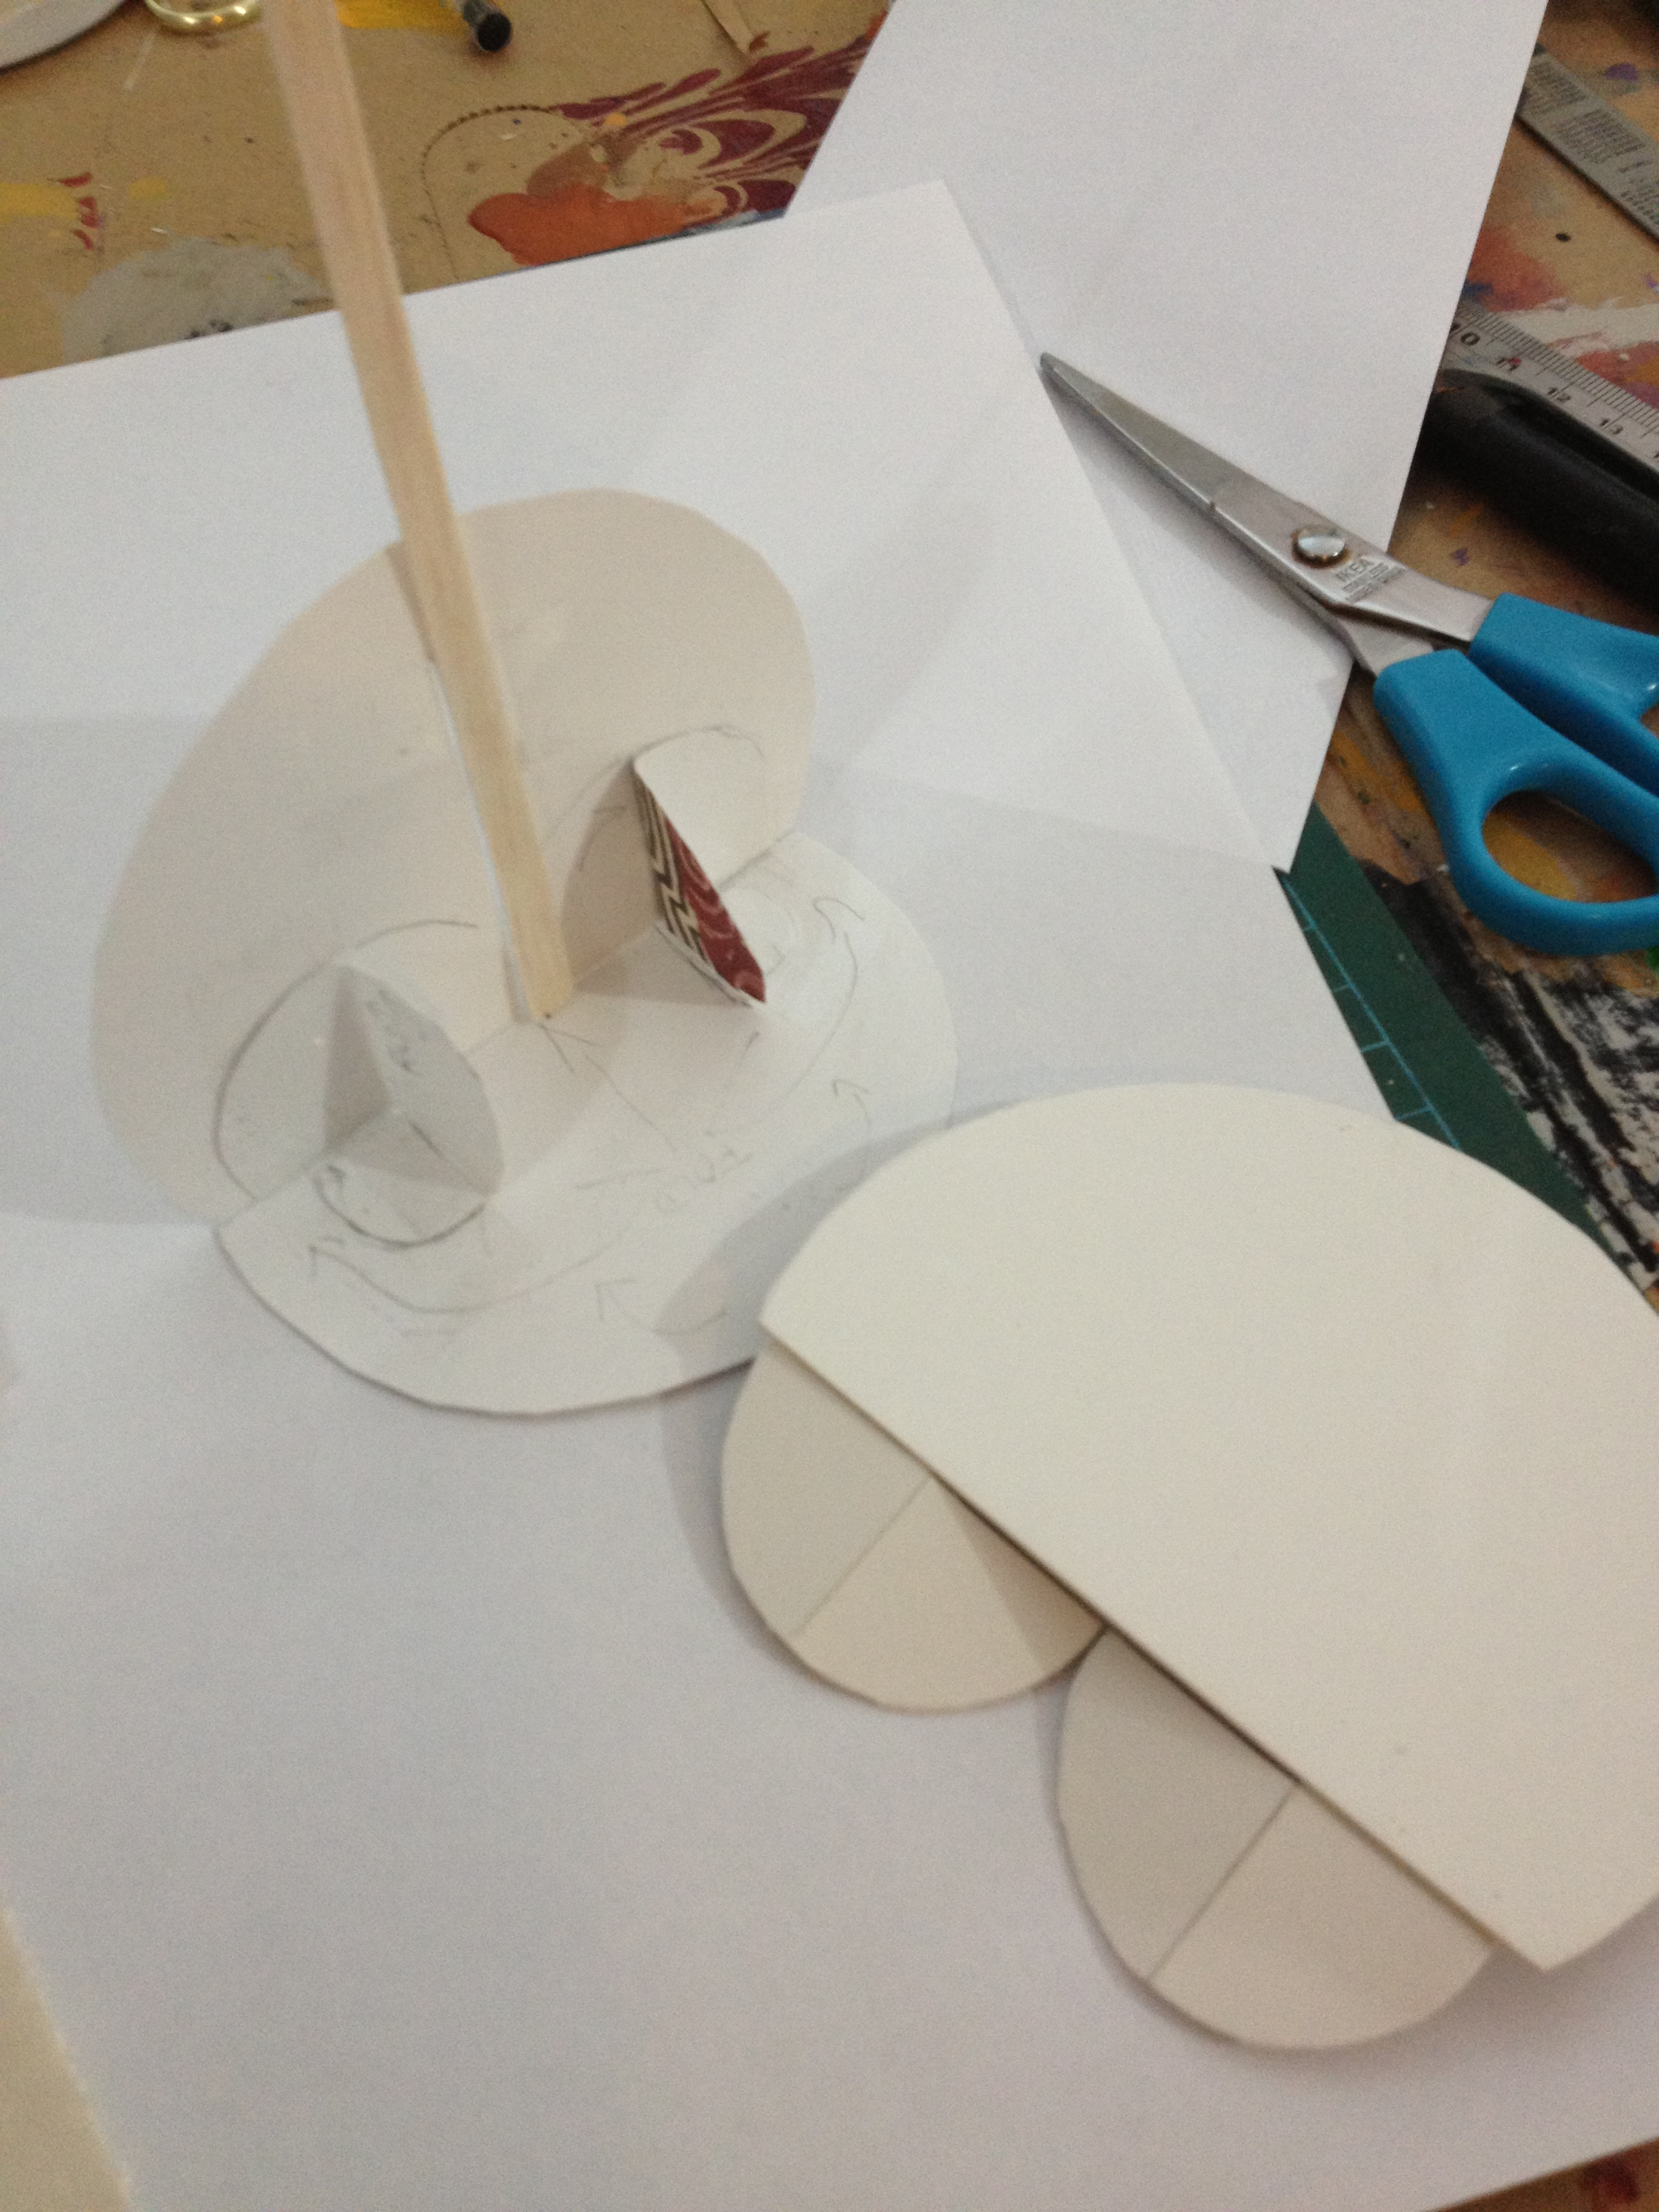 Going with a semi circle motif, the stand folds flat for storage inside the folder.